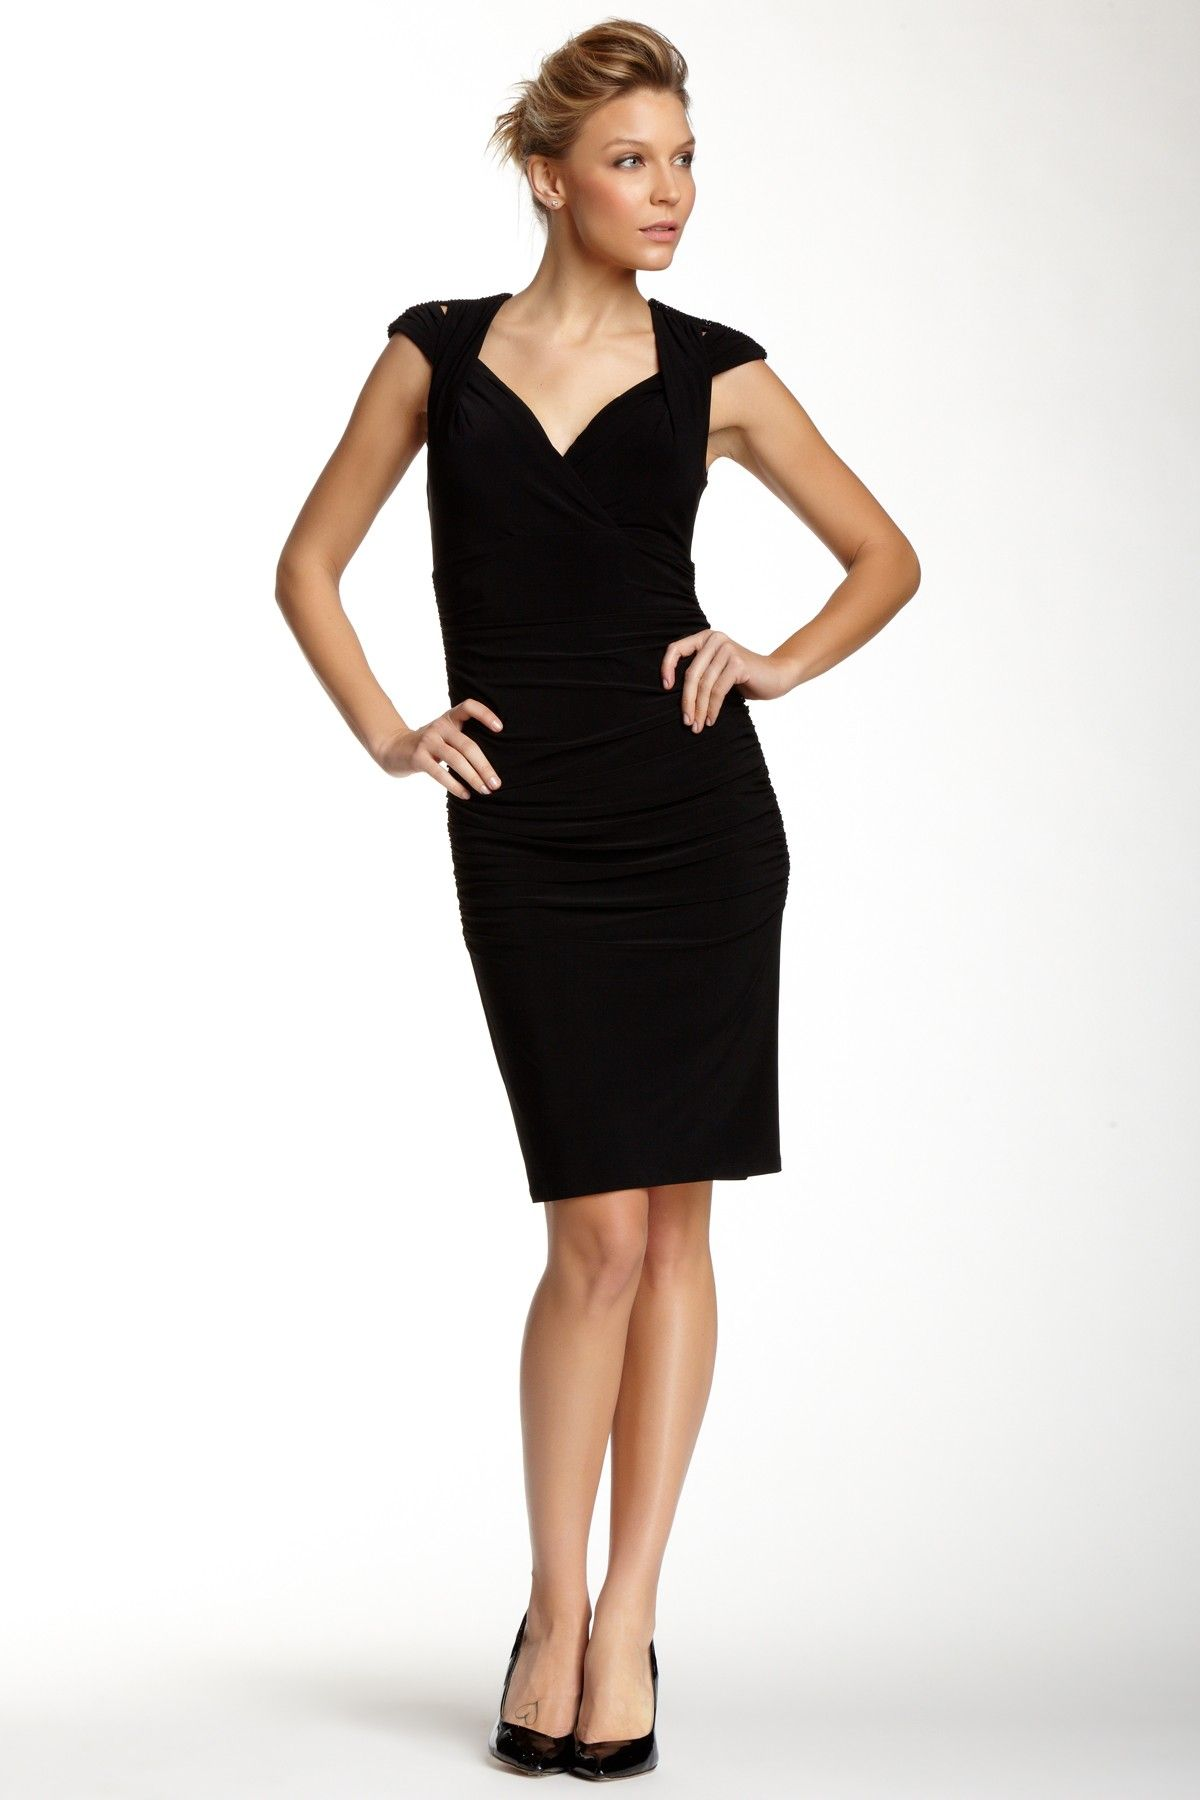 Embellished Twisted Strap Cocktail Dress   Shelli segal, Laundry and ...